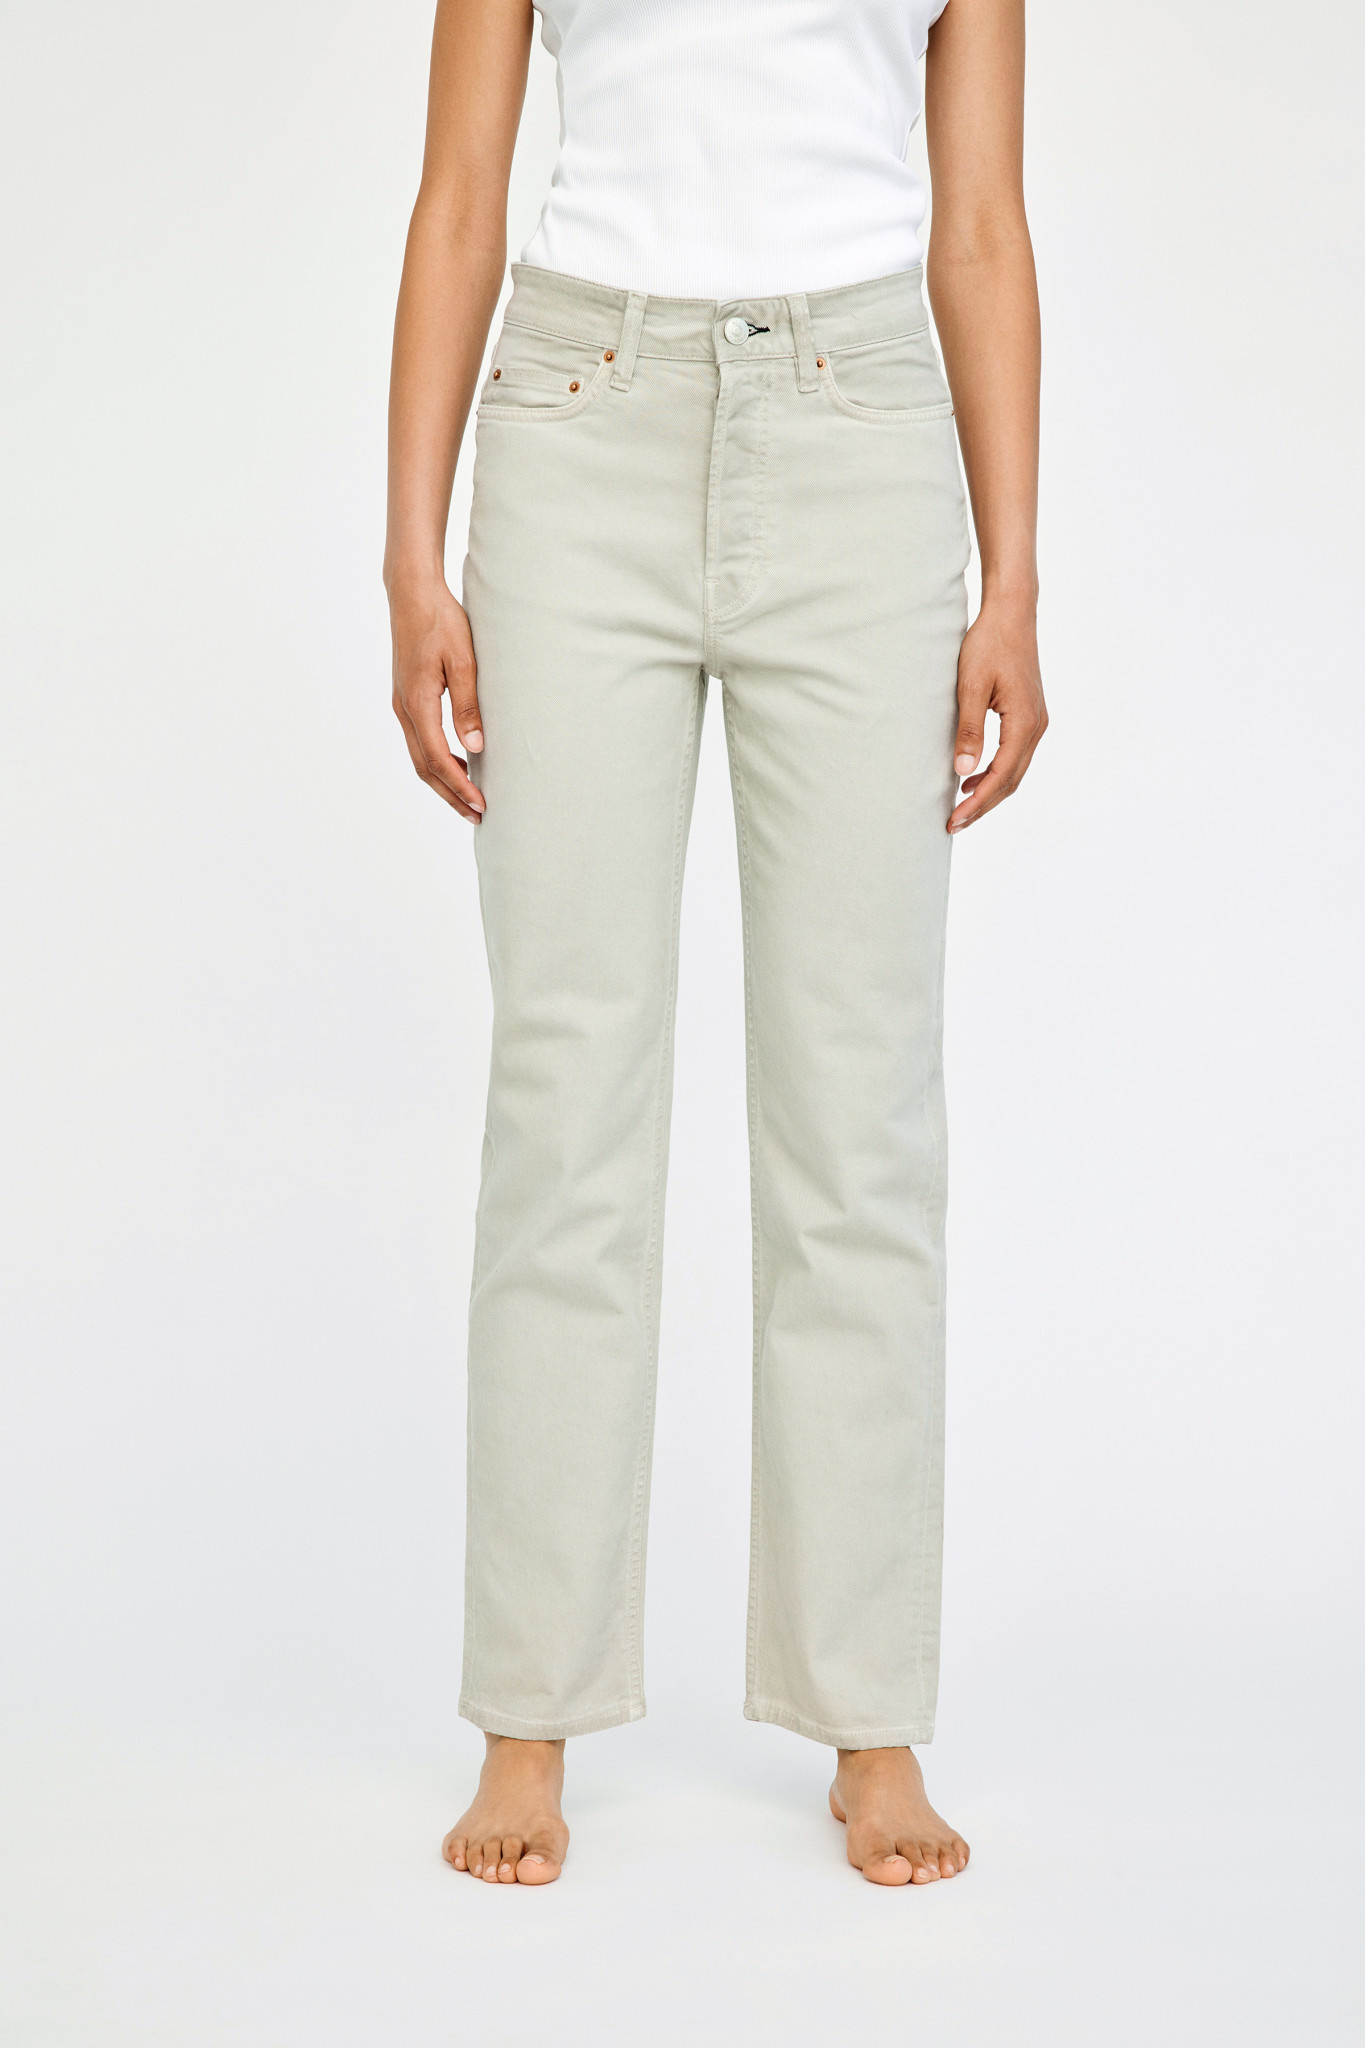 Billy Jeans - Dirty White-1